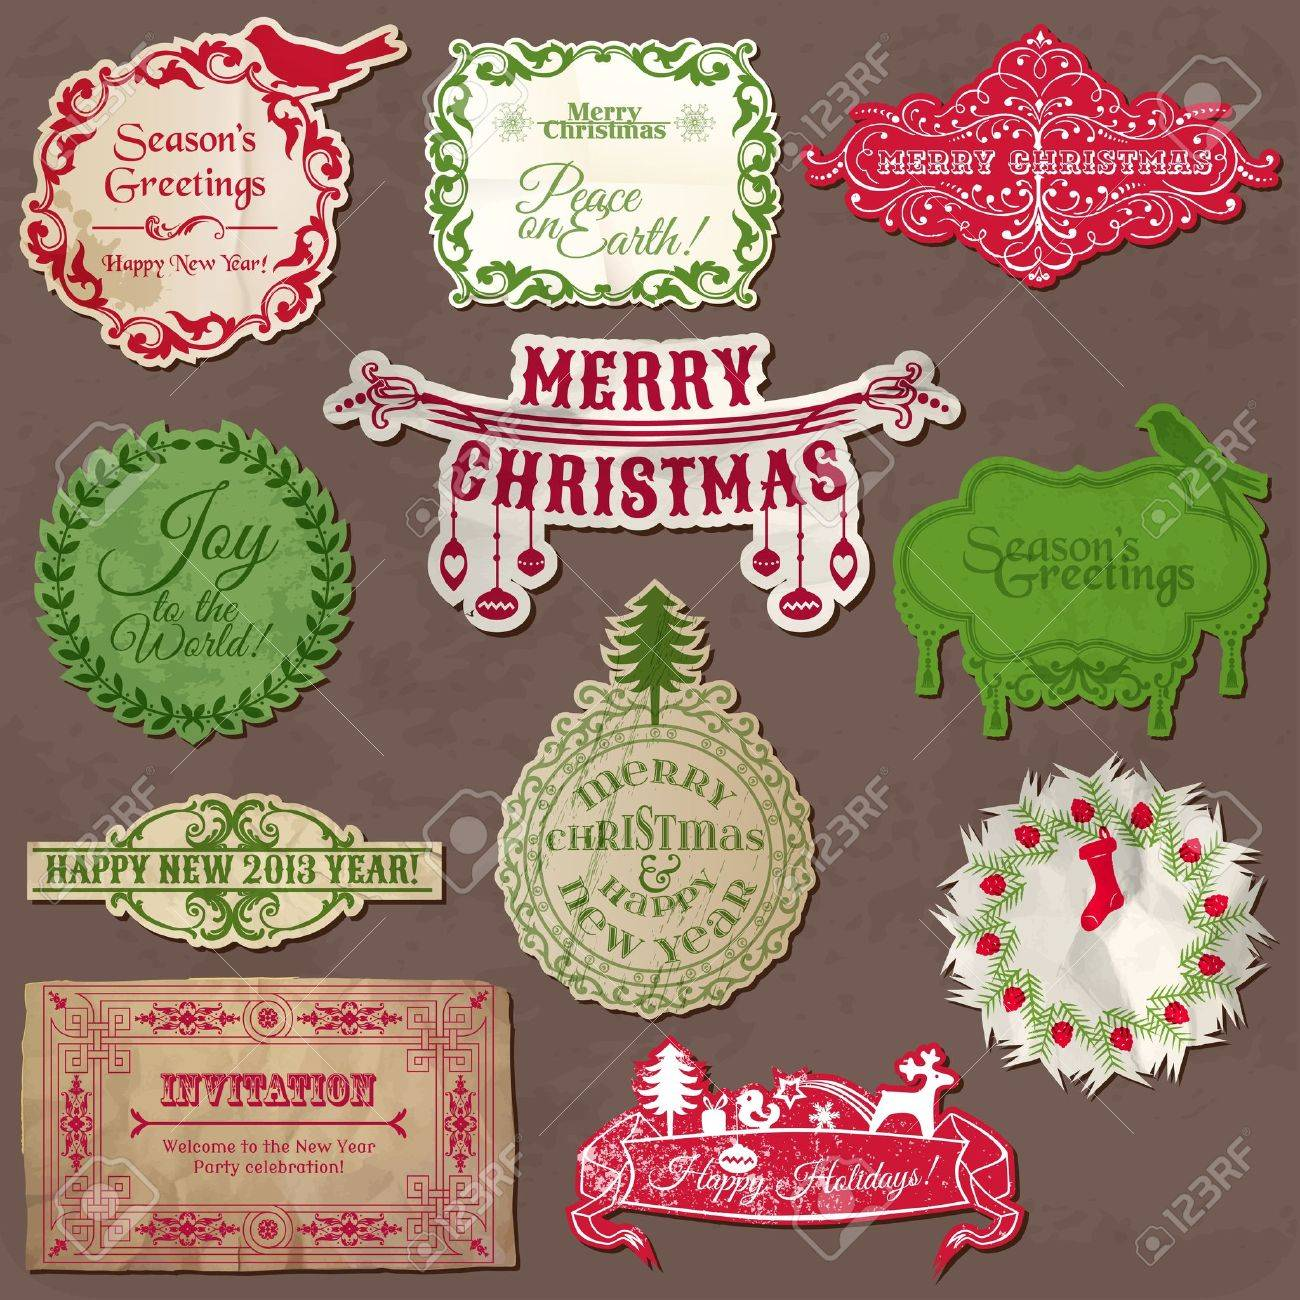 Christmas Calligraphic Design Elements and Vintage Frames Stock Vector - 15356356